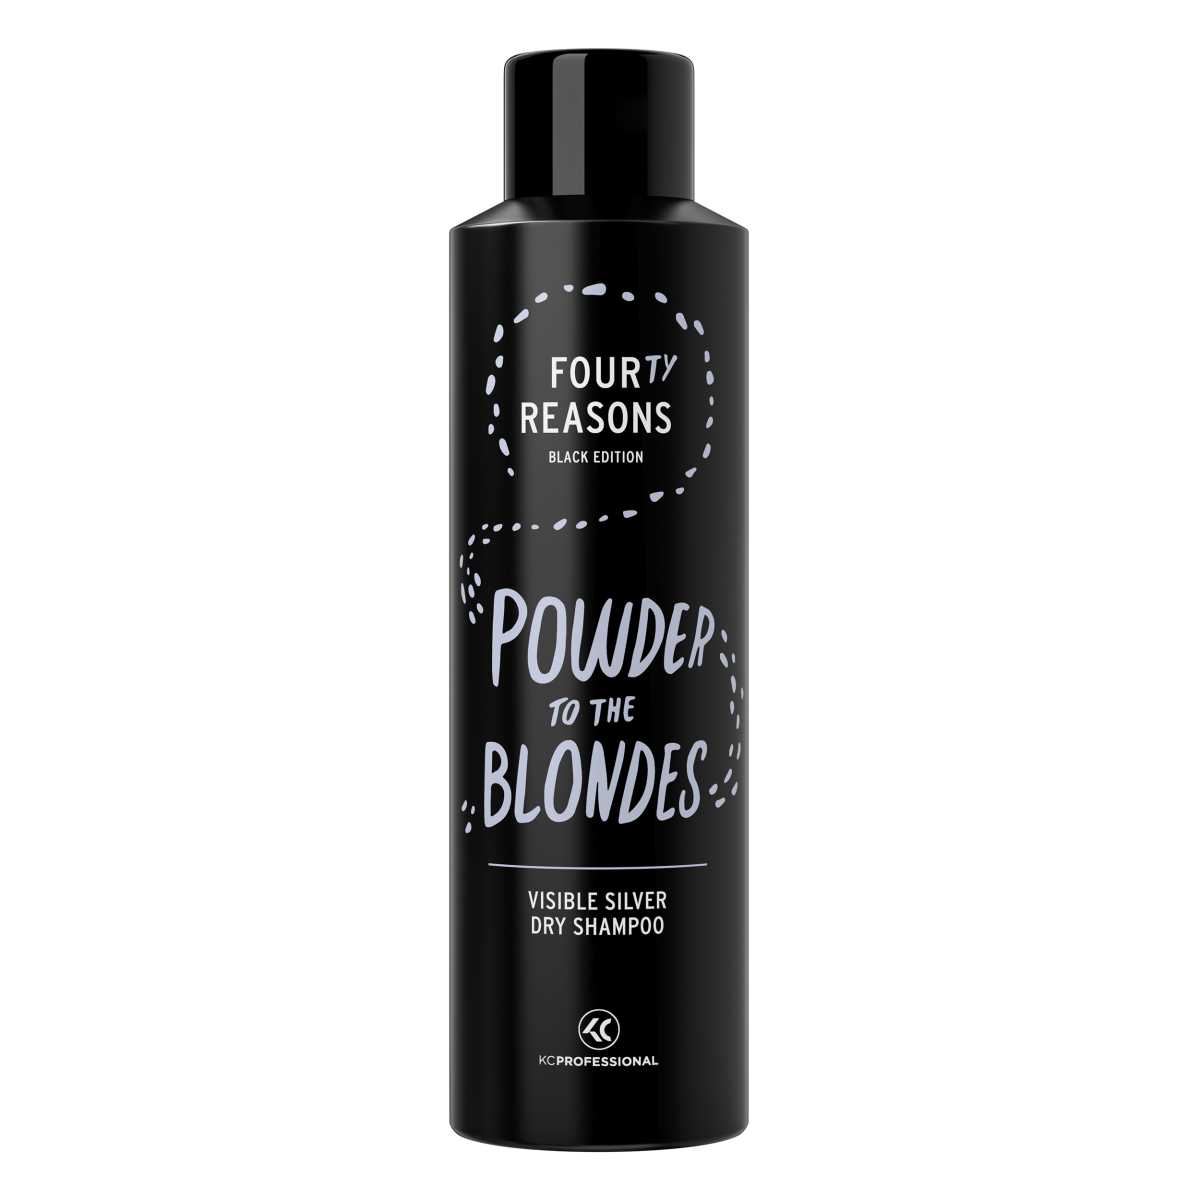 Four-Reasons-Black-Edition-Visible-Silver-Dry-Shampoo